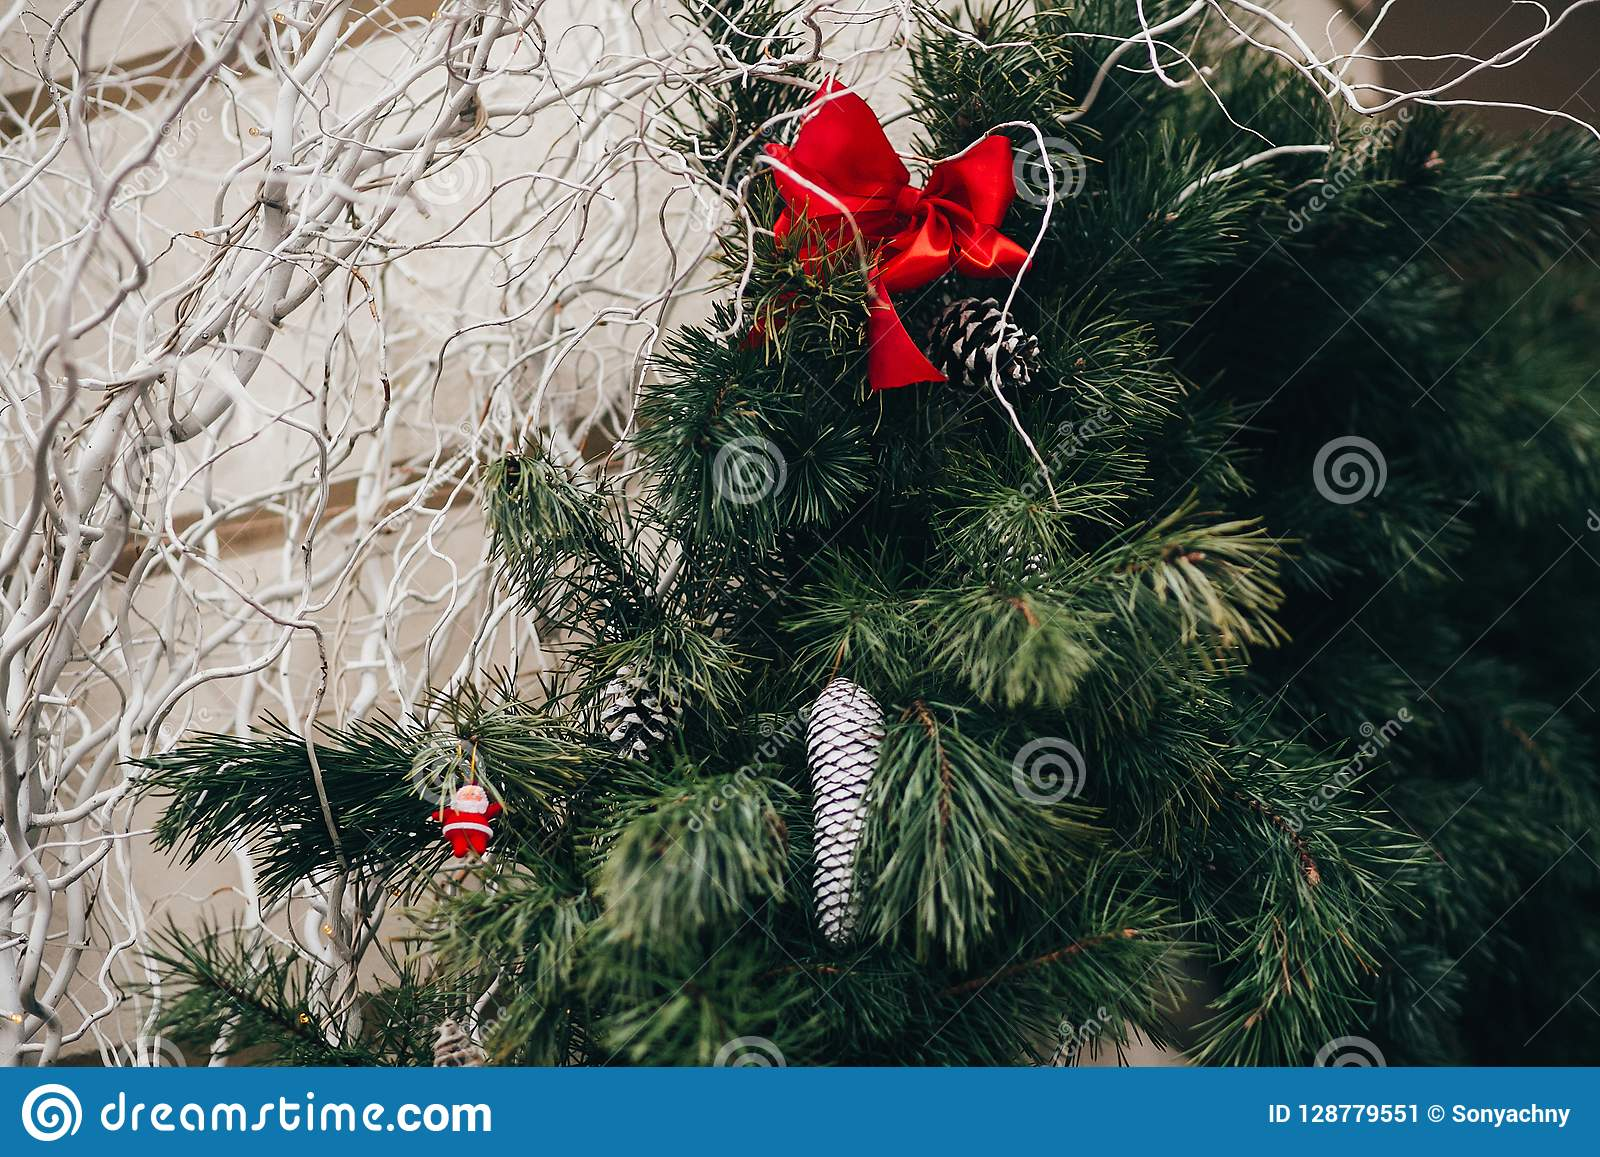 Stylish Christmas Decorations Green Christmas Wreath With Red B Stock Image Image Of City Decorative 128779551